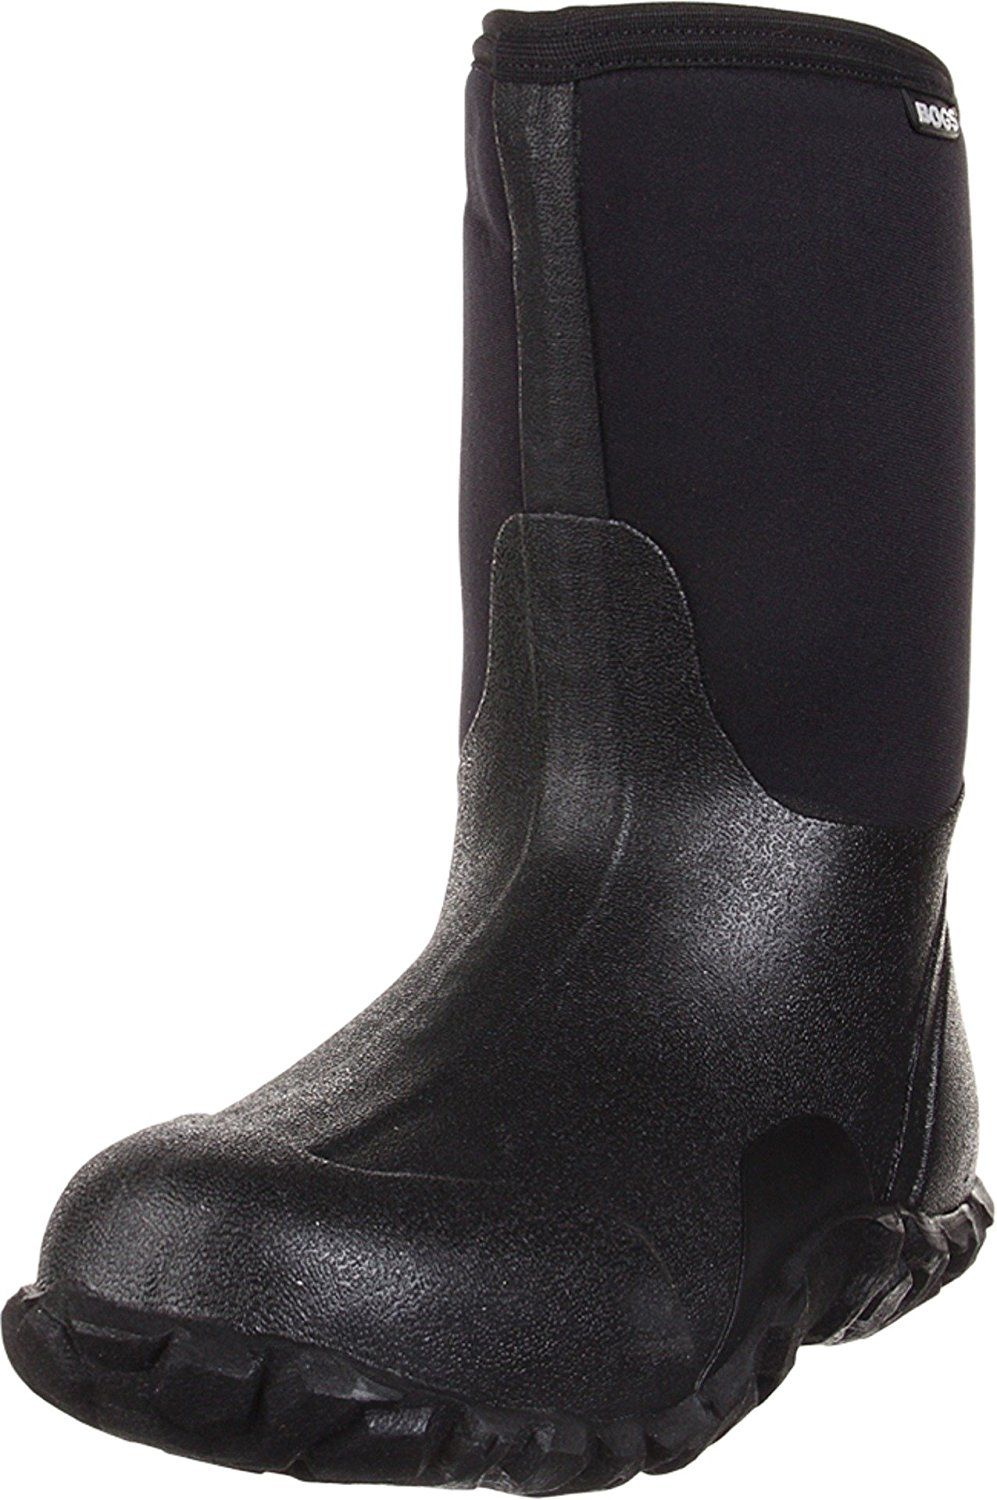 Bogs Men's Classic Mid Winter Snow Boot ** See this great